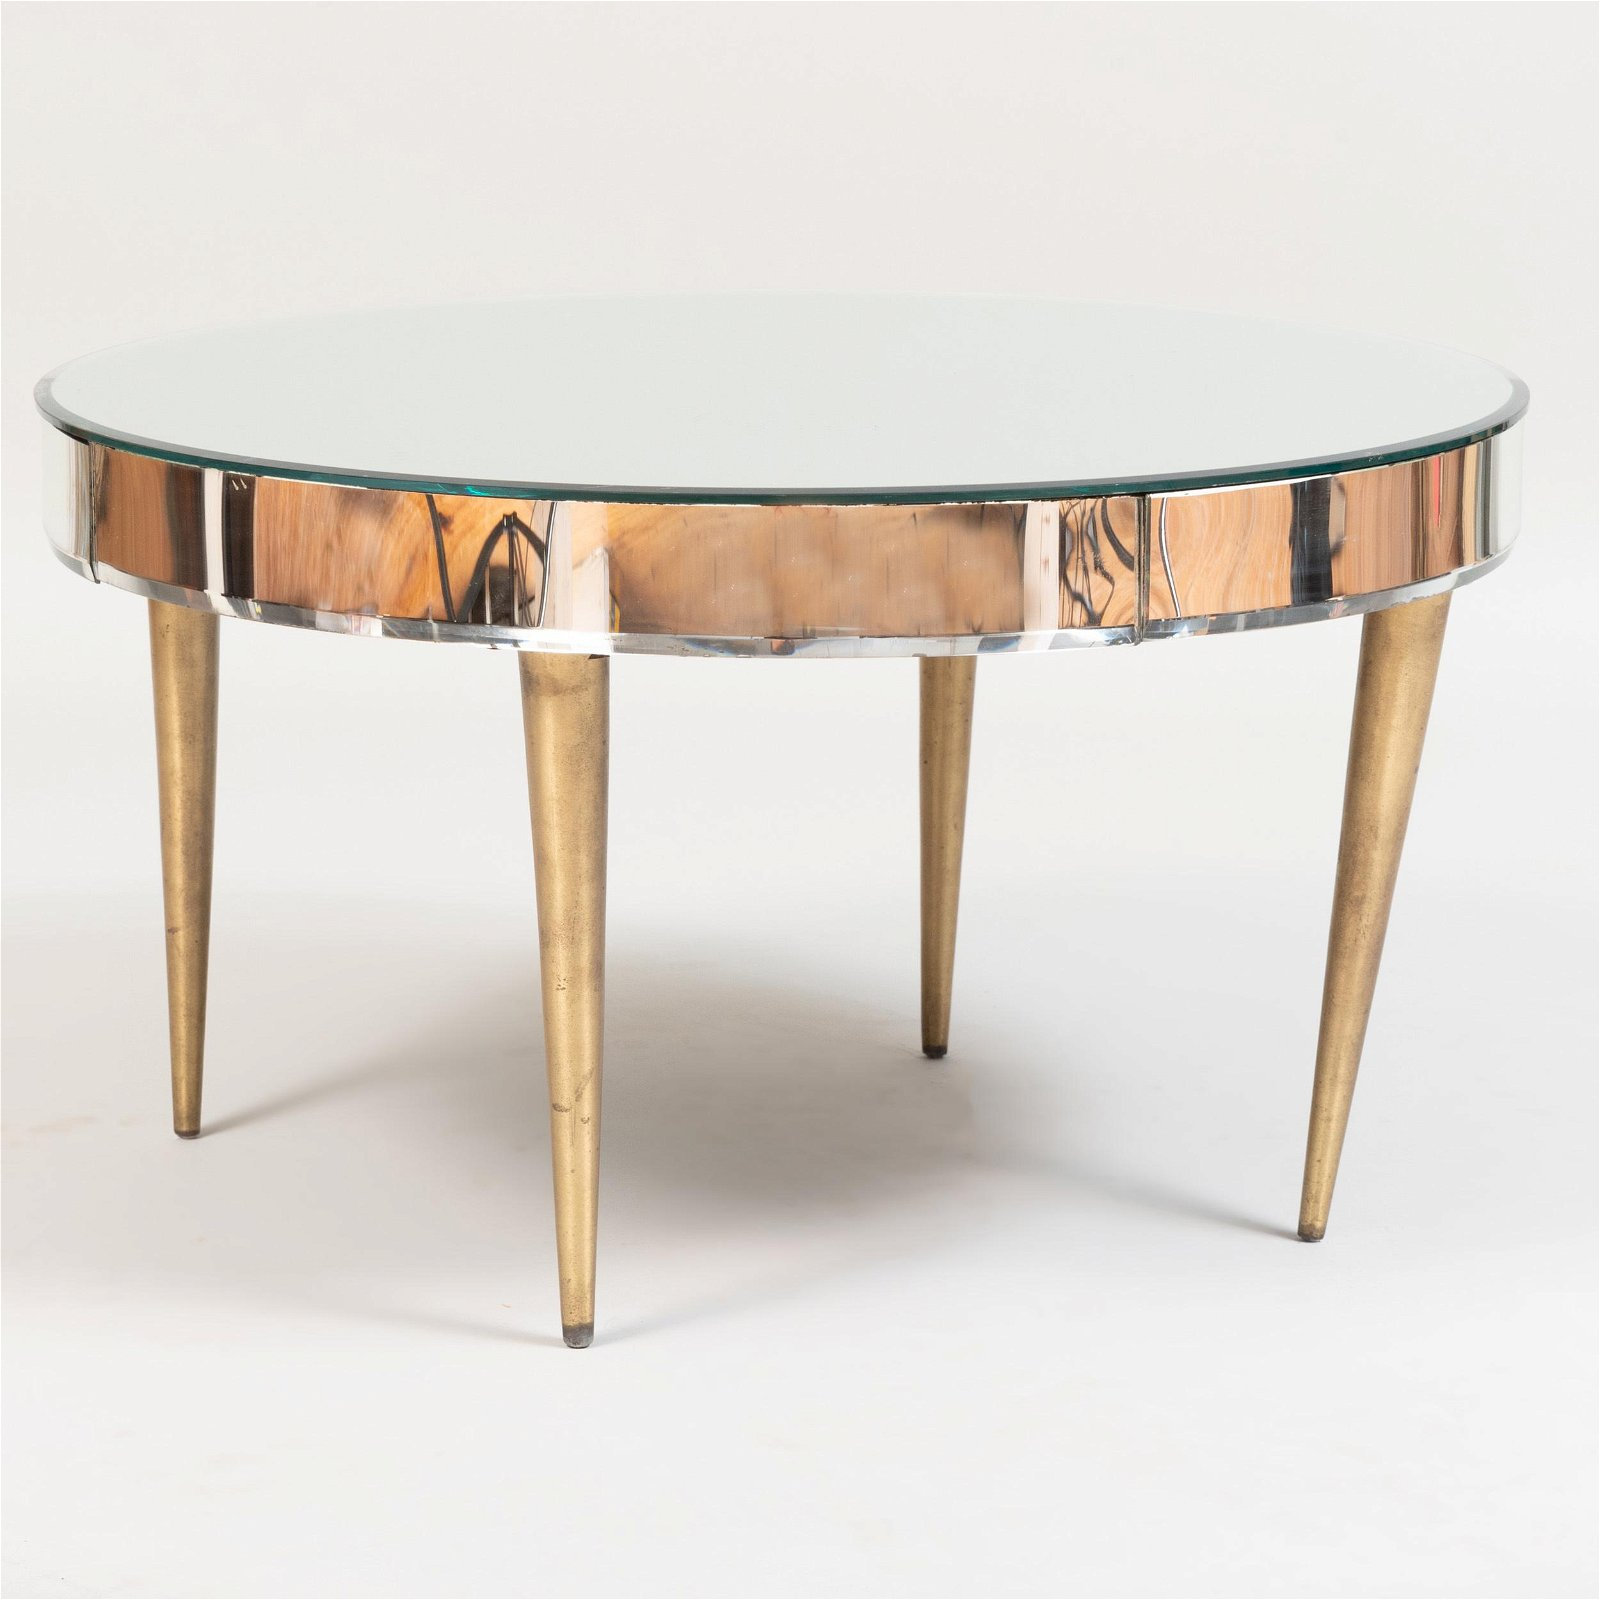 Mirror and Gilt-Metal-Mounted Circular Low Table